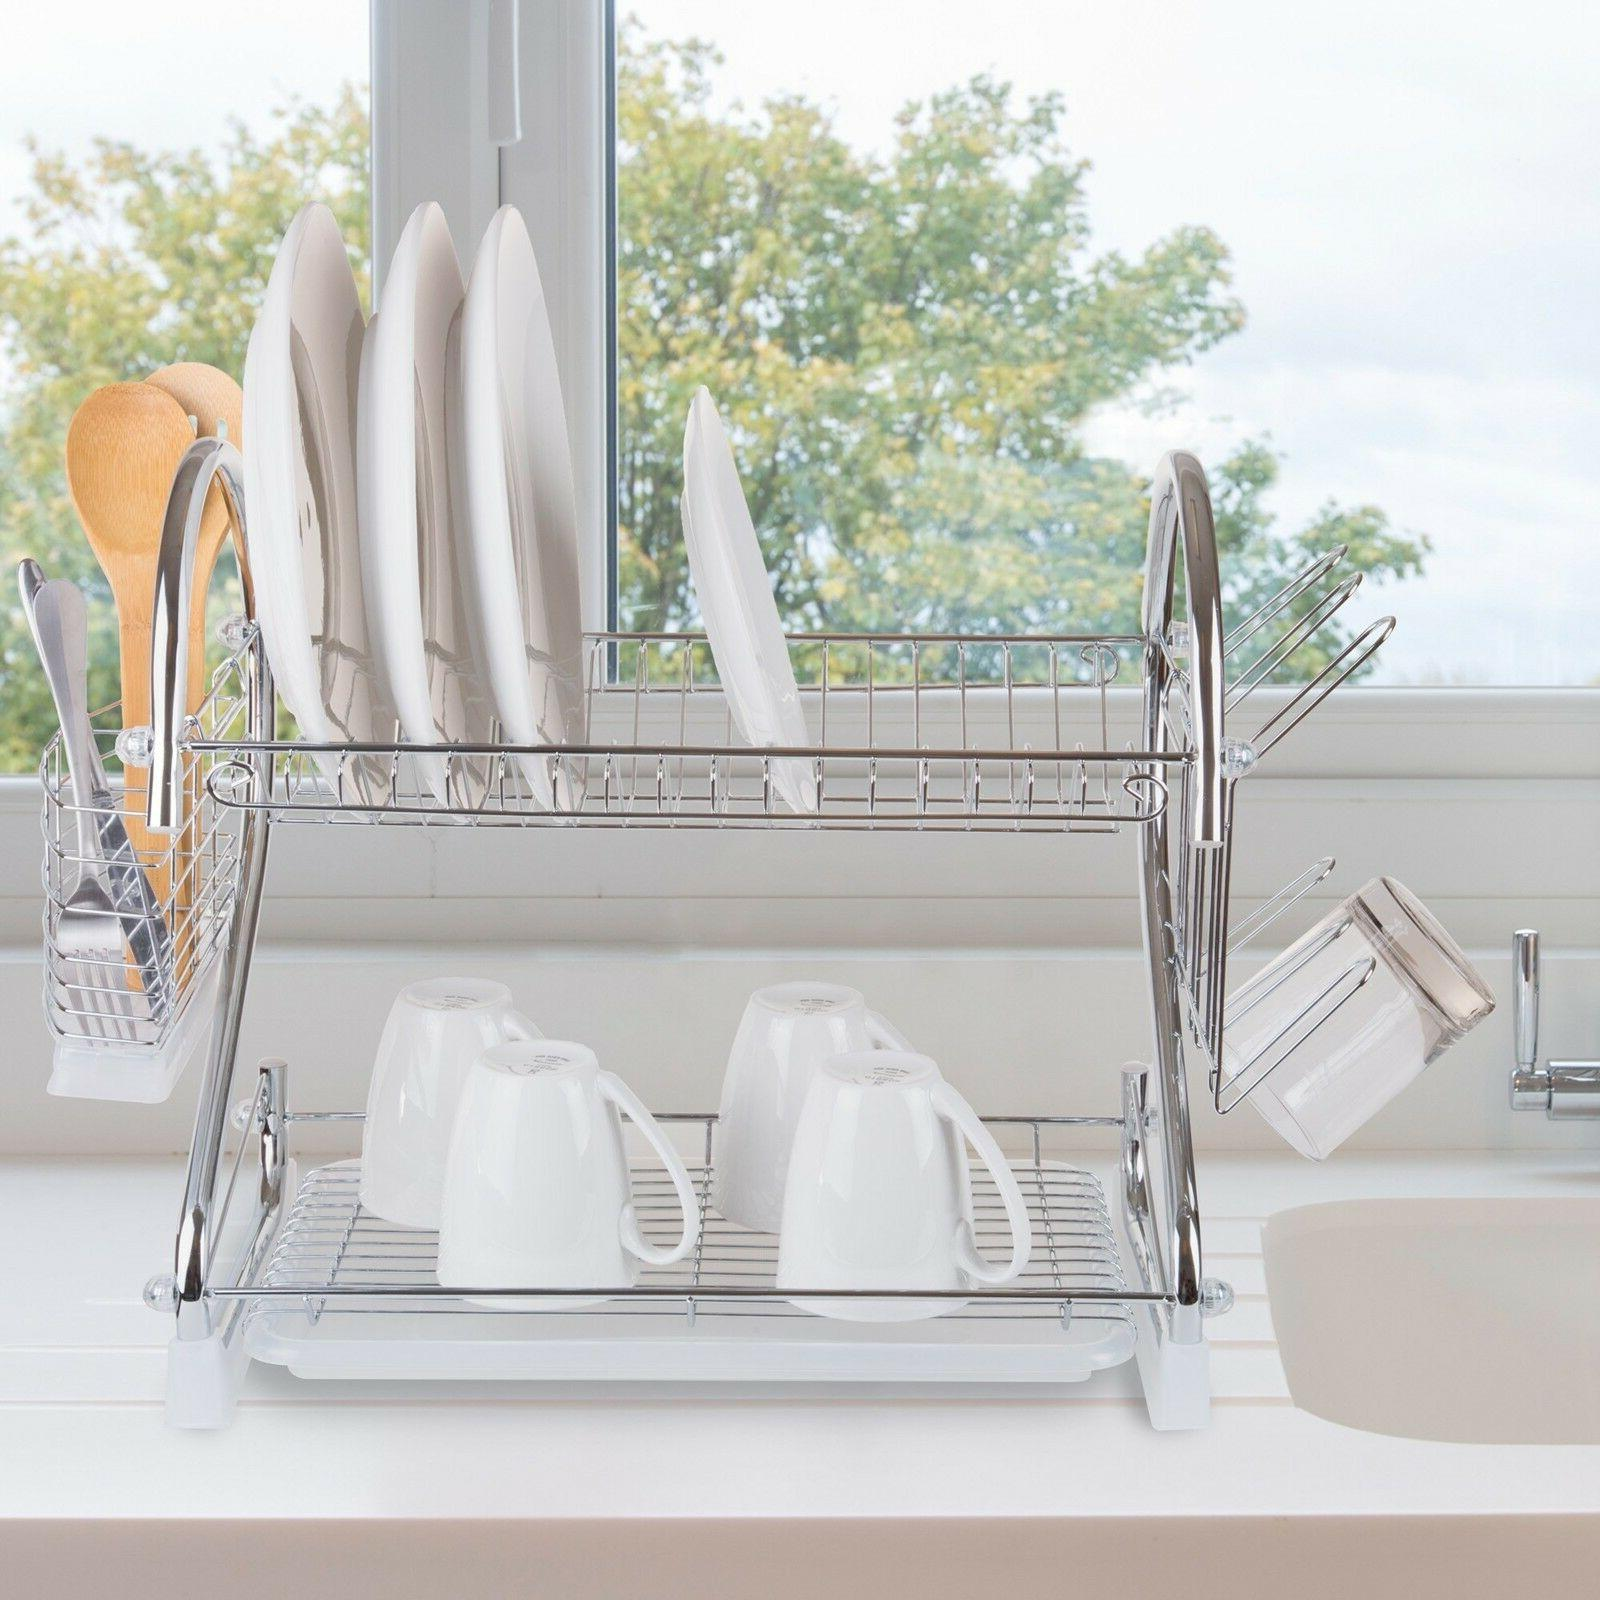 Chrome Dish Drying Rack 2 Tiered with Cup and Utensil Holders by Chef Buddy